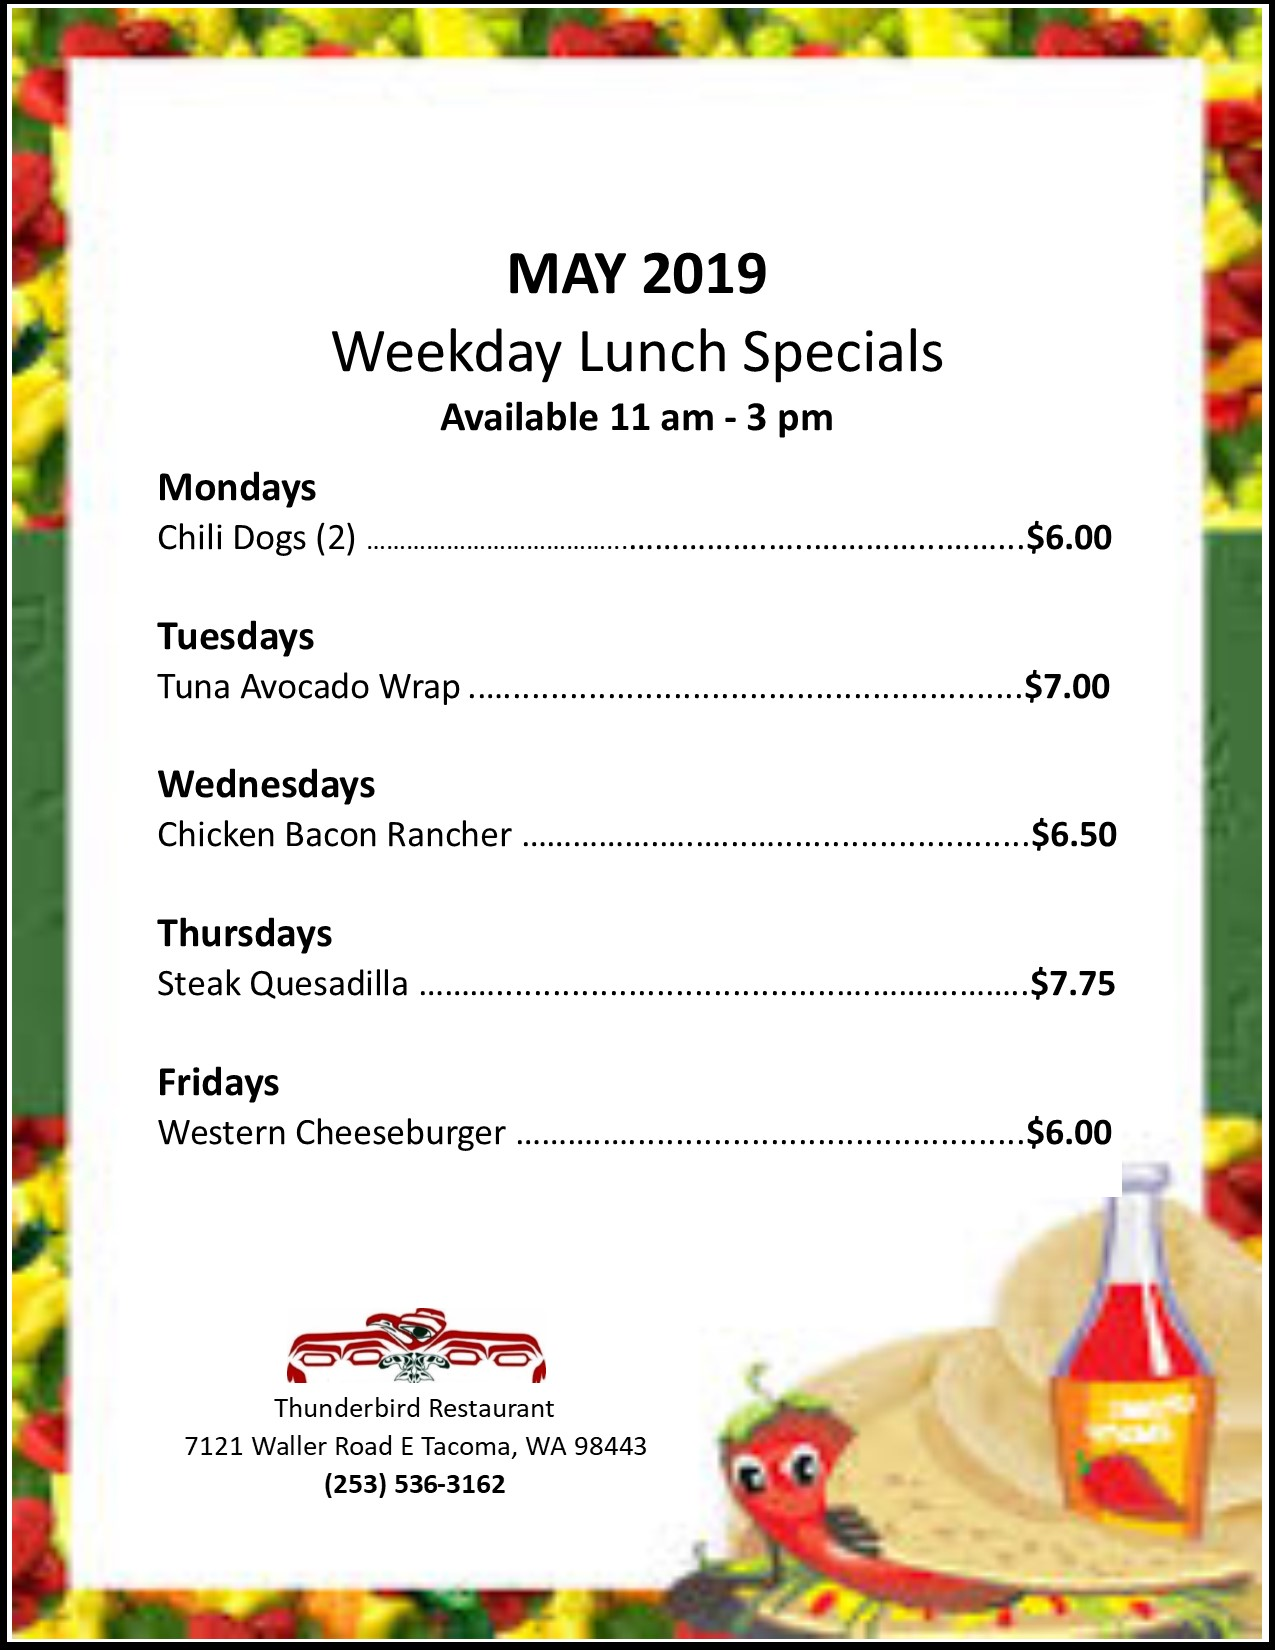 Weekday Lunch Specials February 2019